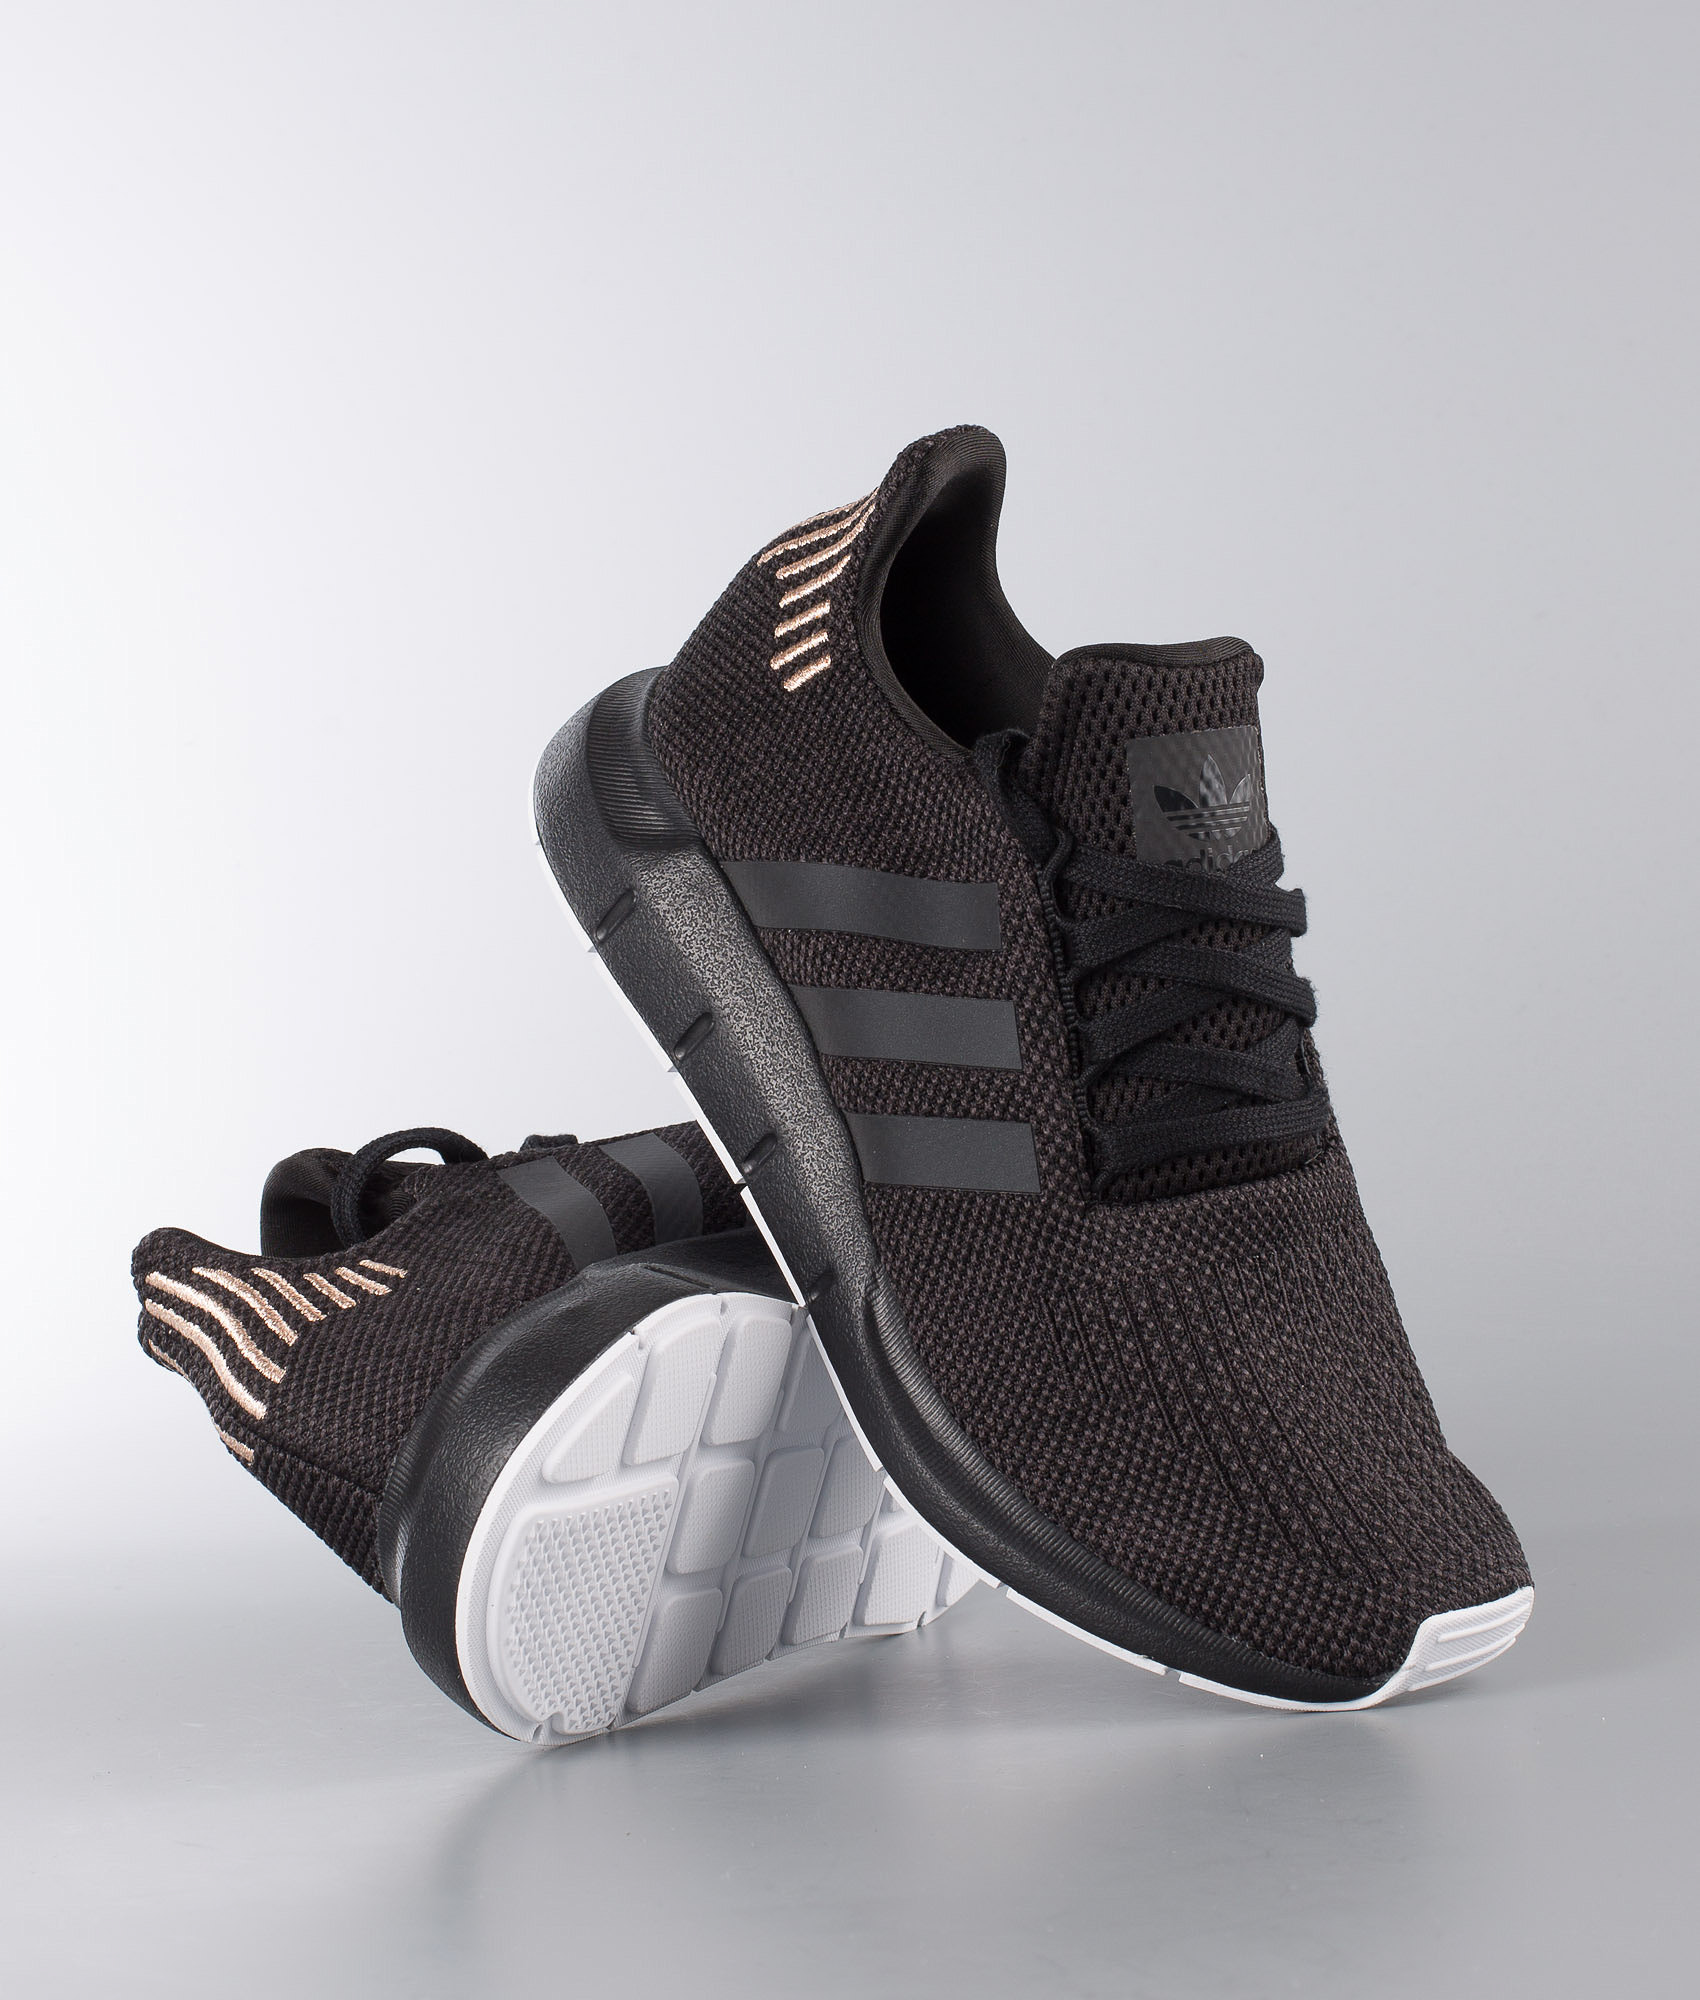 965d3dfa513c2 Adidas Originals Swift Run W Shoes Core Black Carbon Ftwr White ...